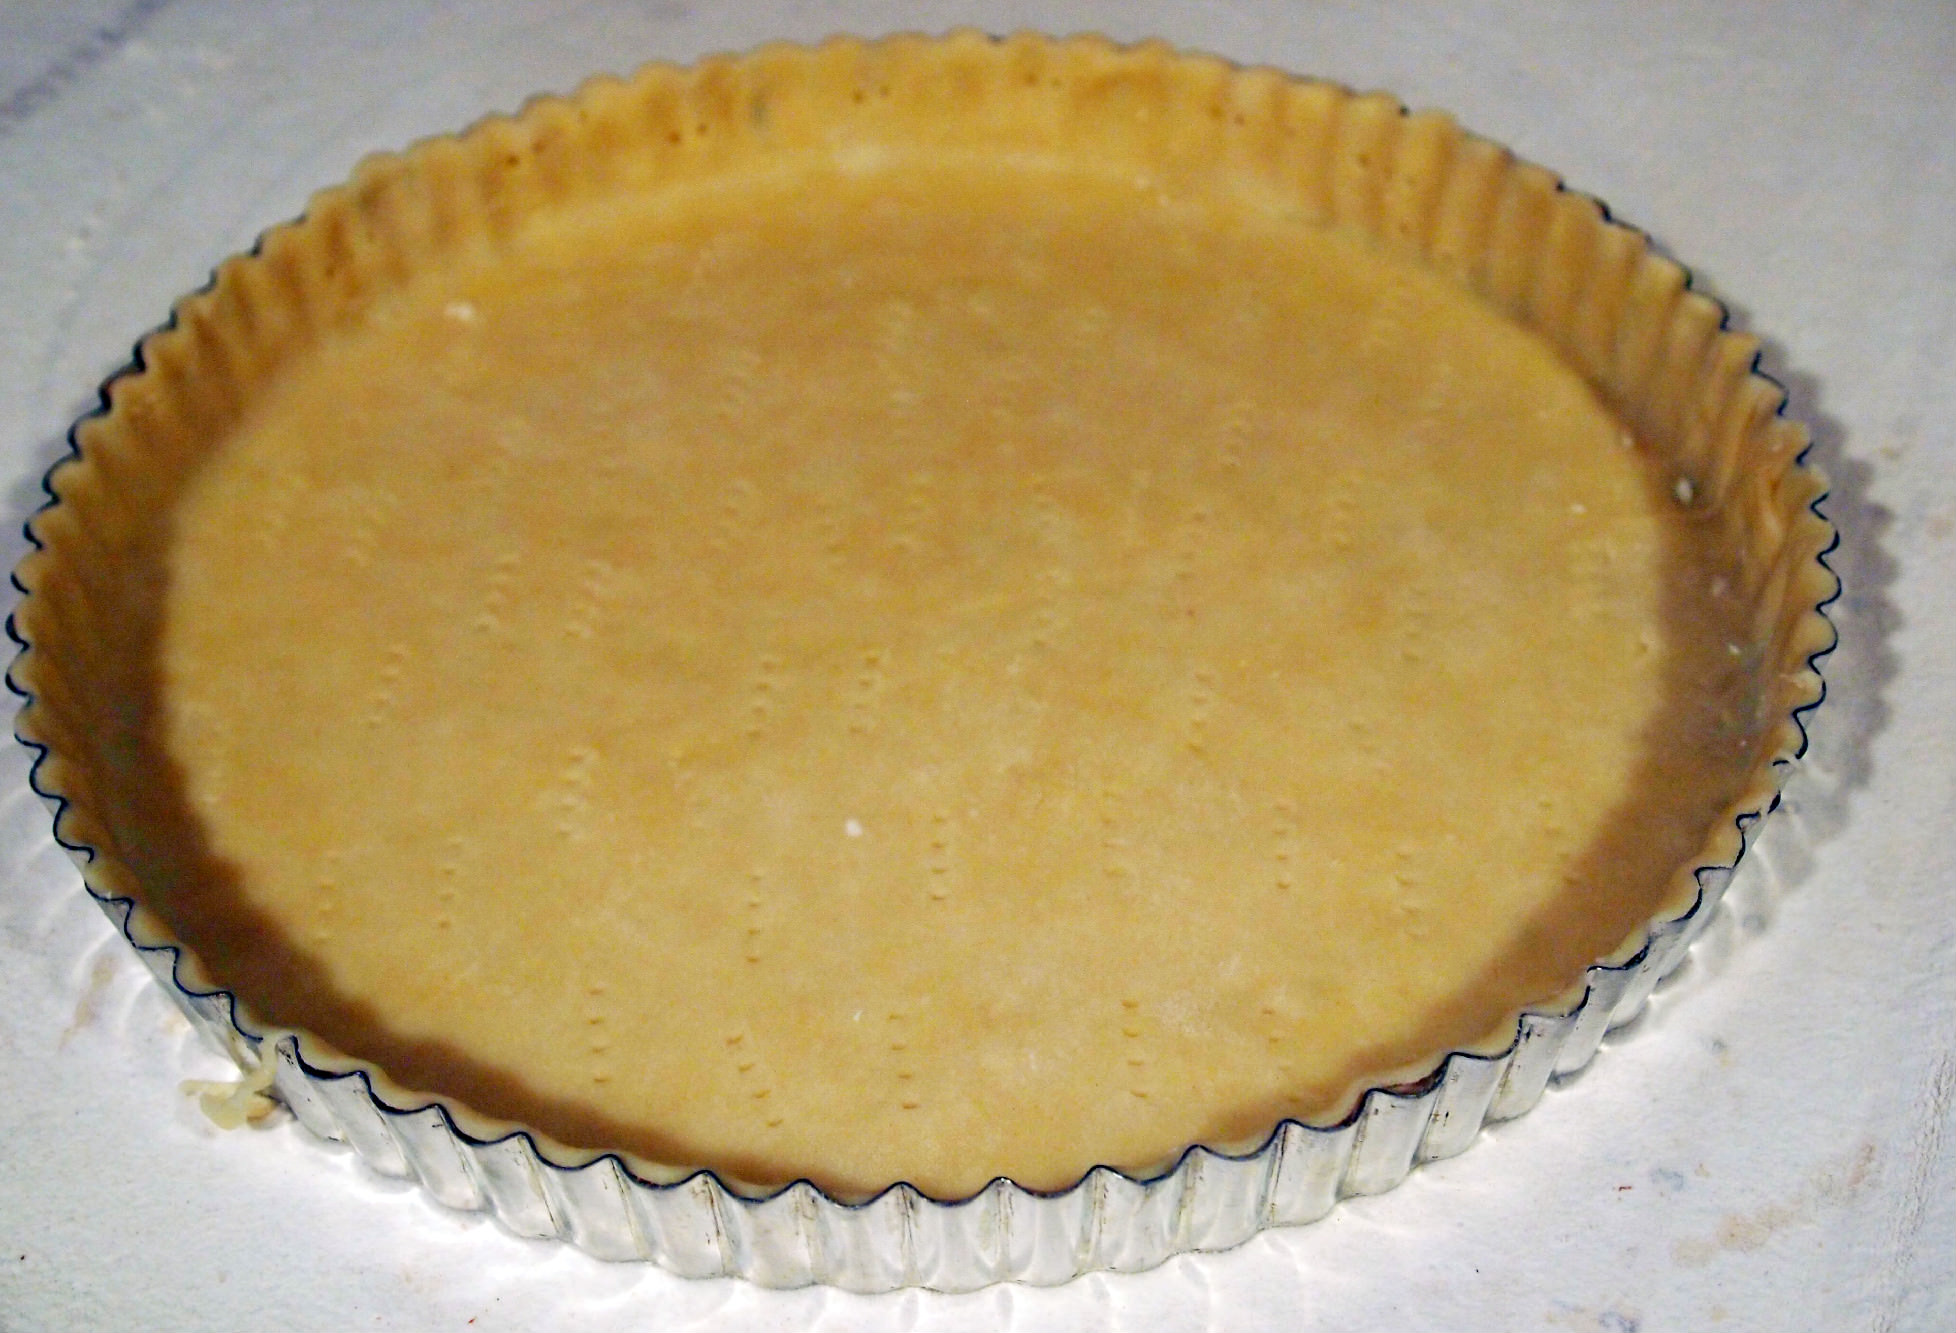 tart pan filled with pastry dough